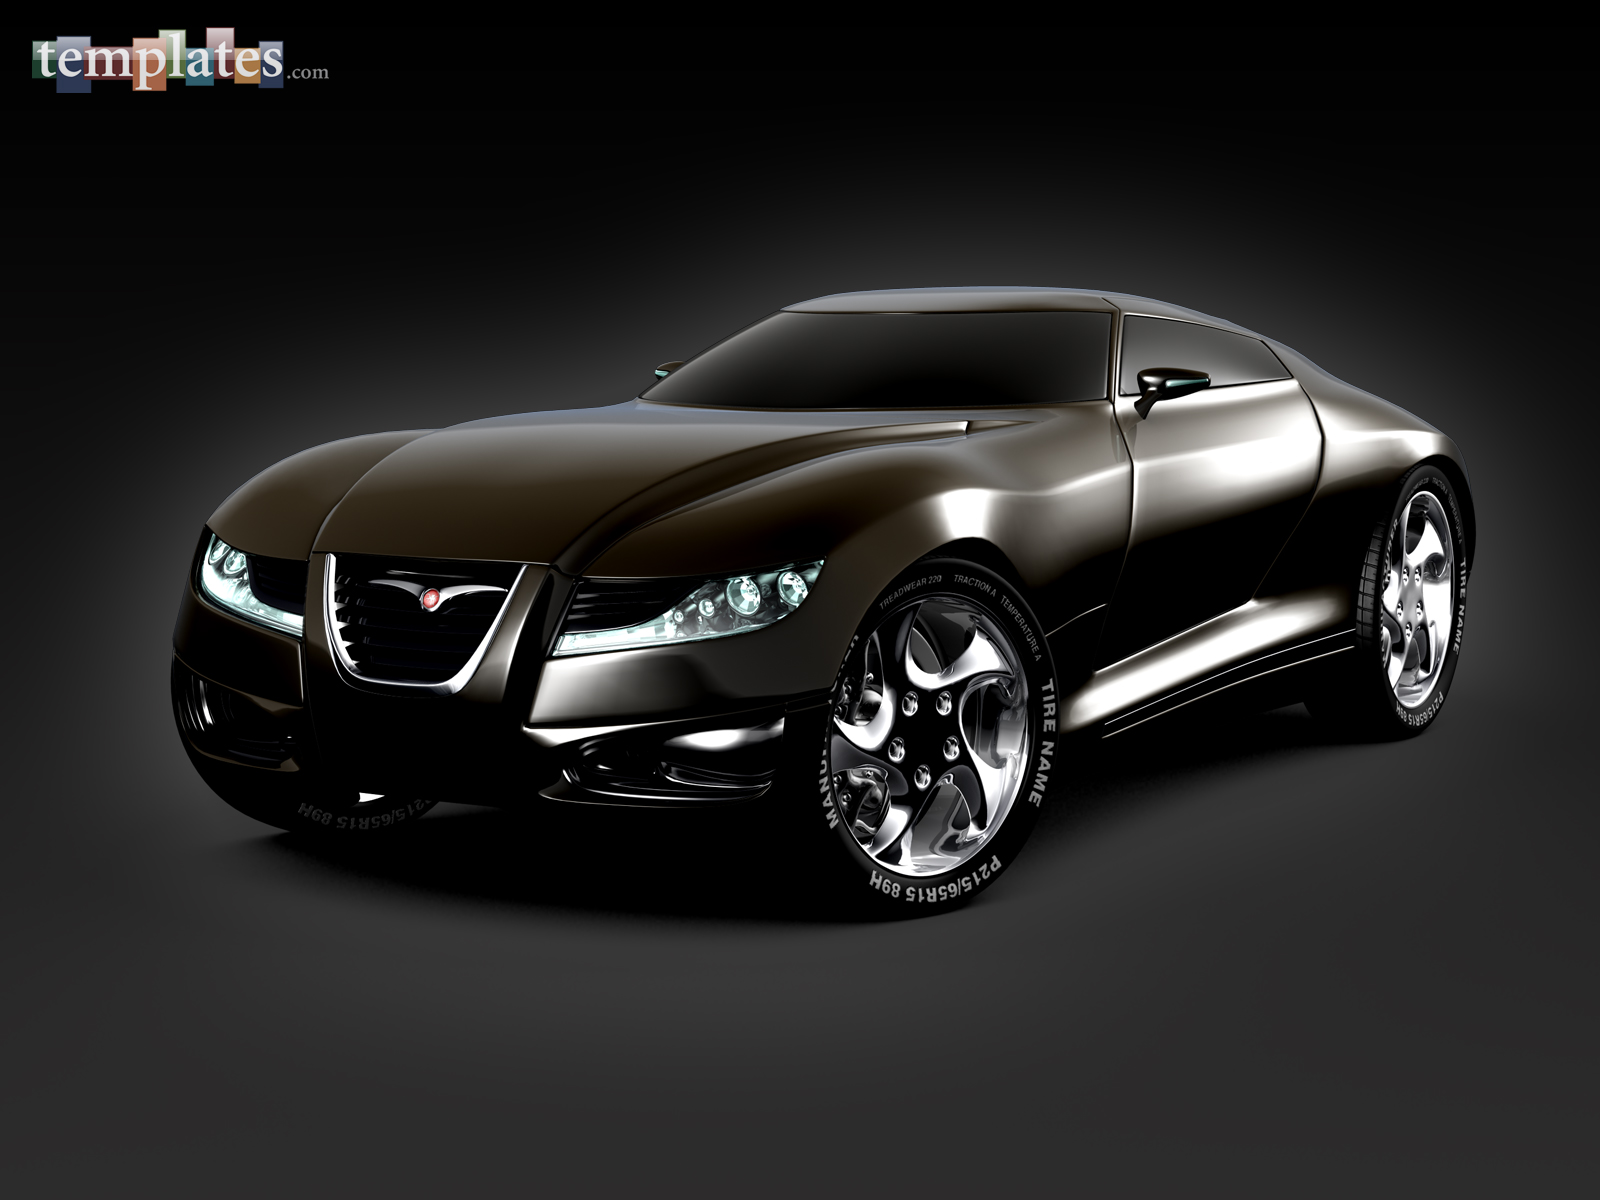 background wallpaper xp wallpaper 3d sports car - Cool Cars Wallpapers 3d